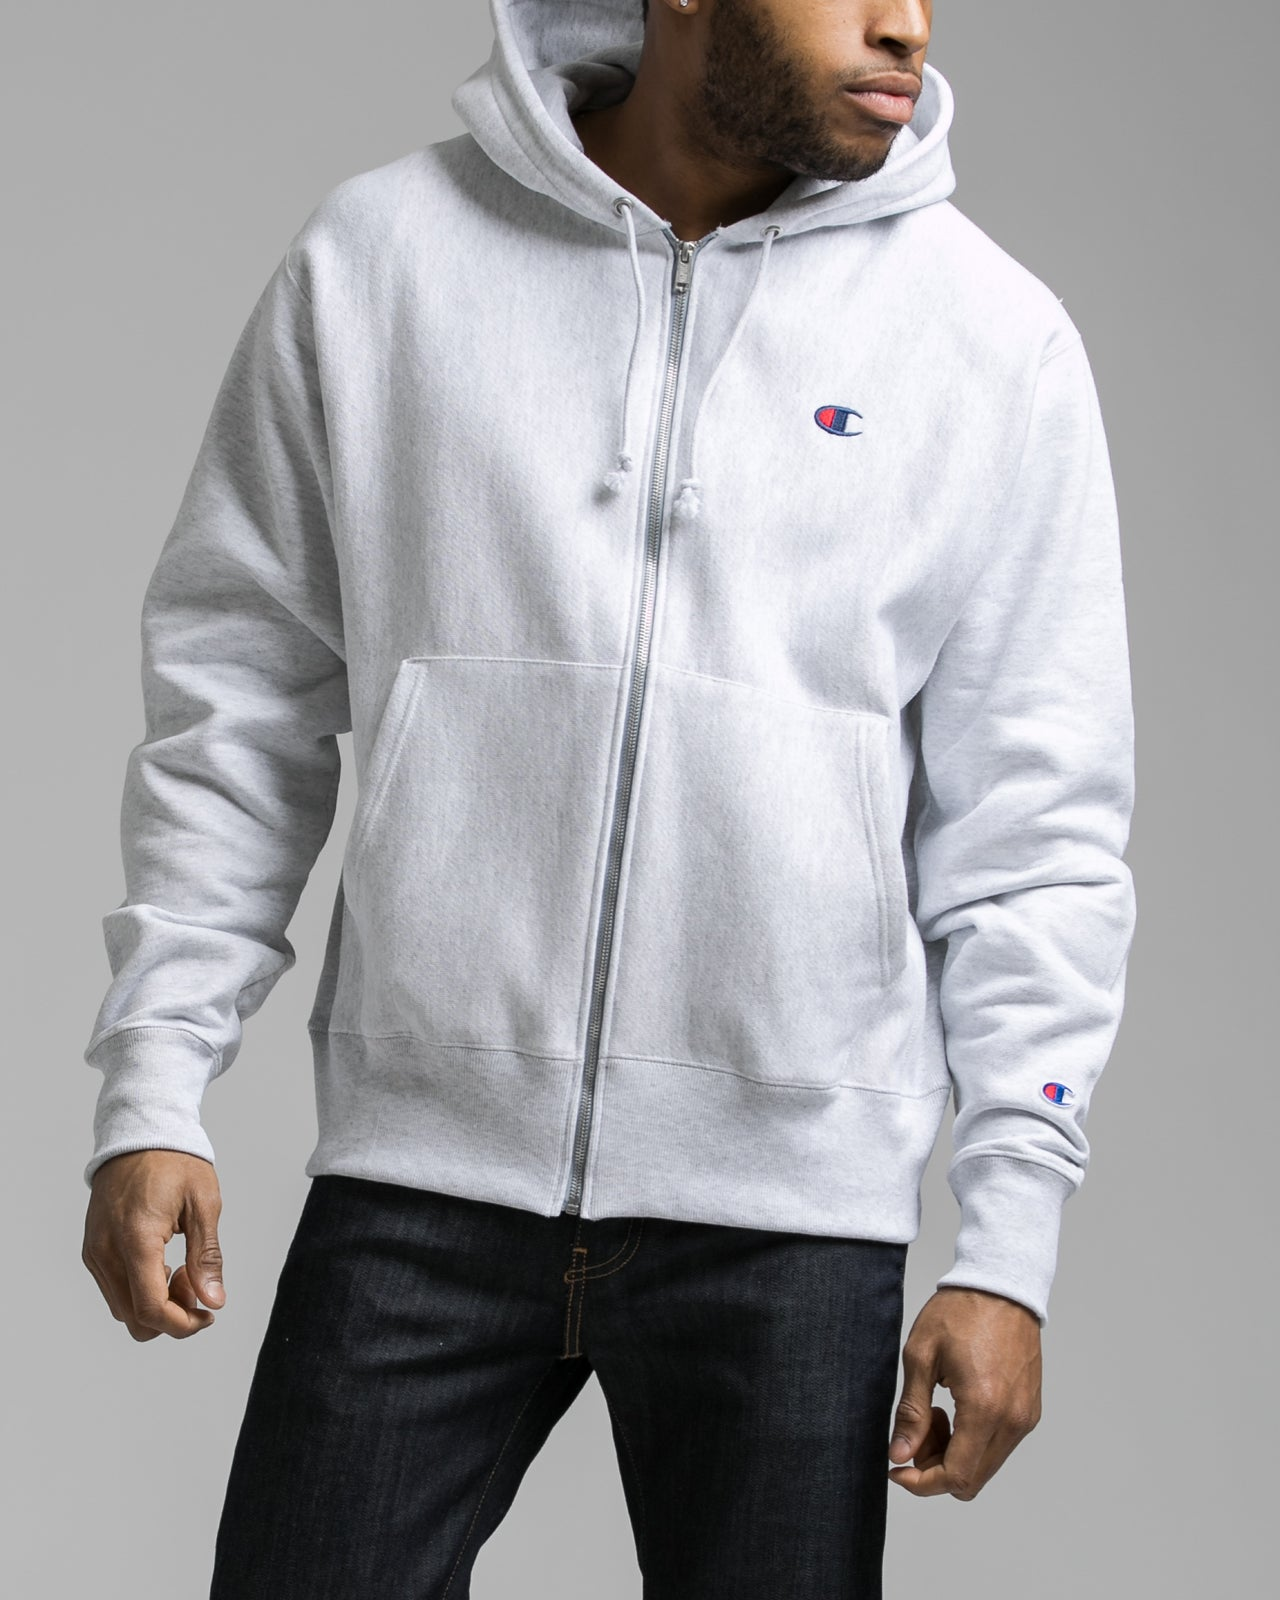 918a33b6d995 Reverse Weave® Full Zip Hoodie - Color  GFS Silver Grey